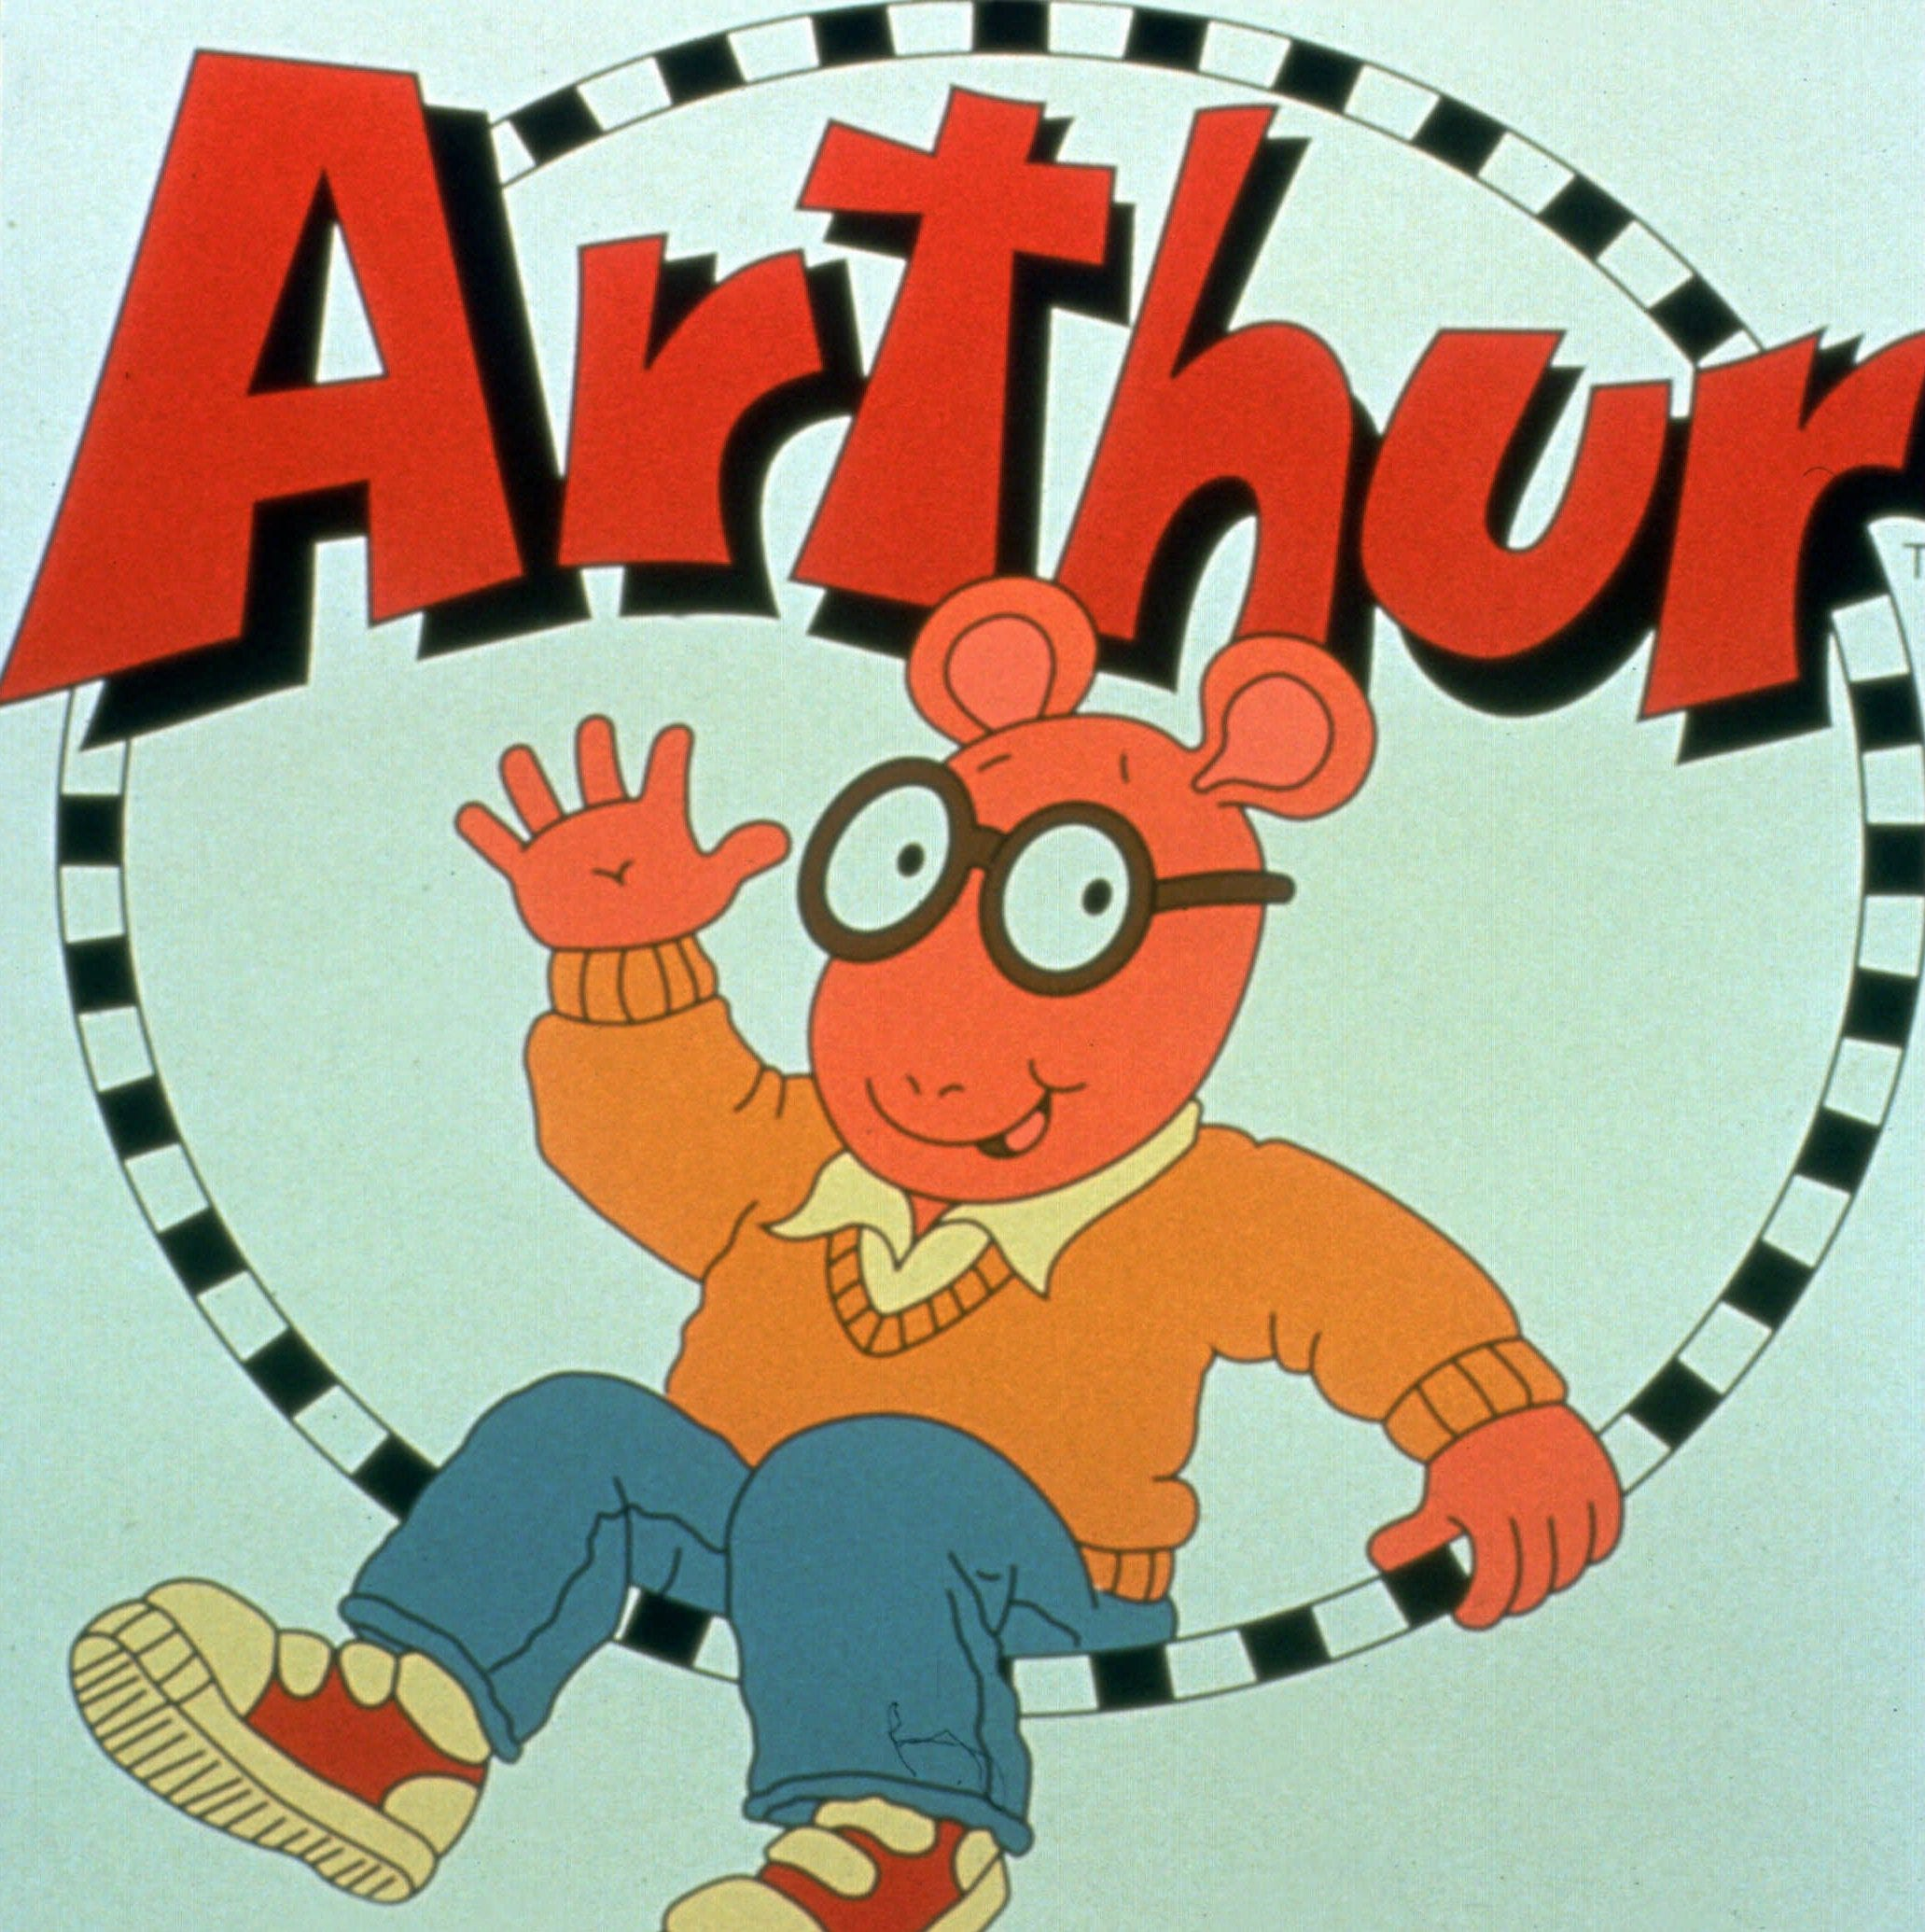 'Arthur' teacher Mr. Ratburn comes out as gay in season 22 premiere. Cheers to that (and to PBS)